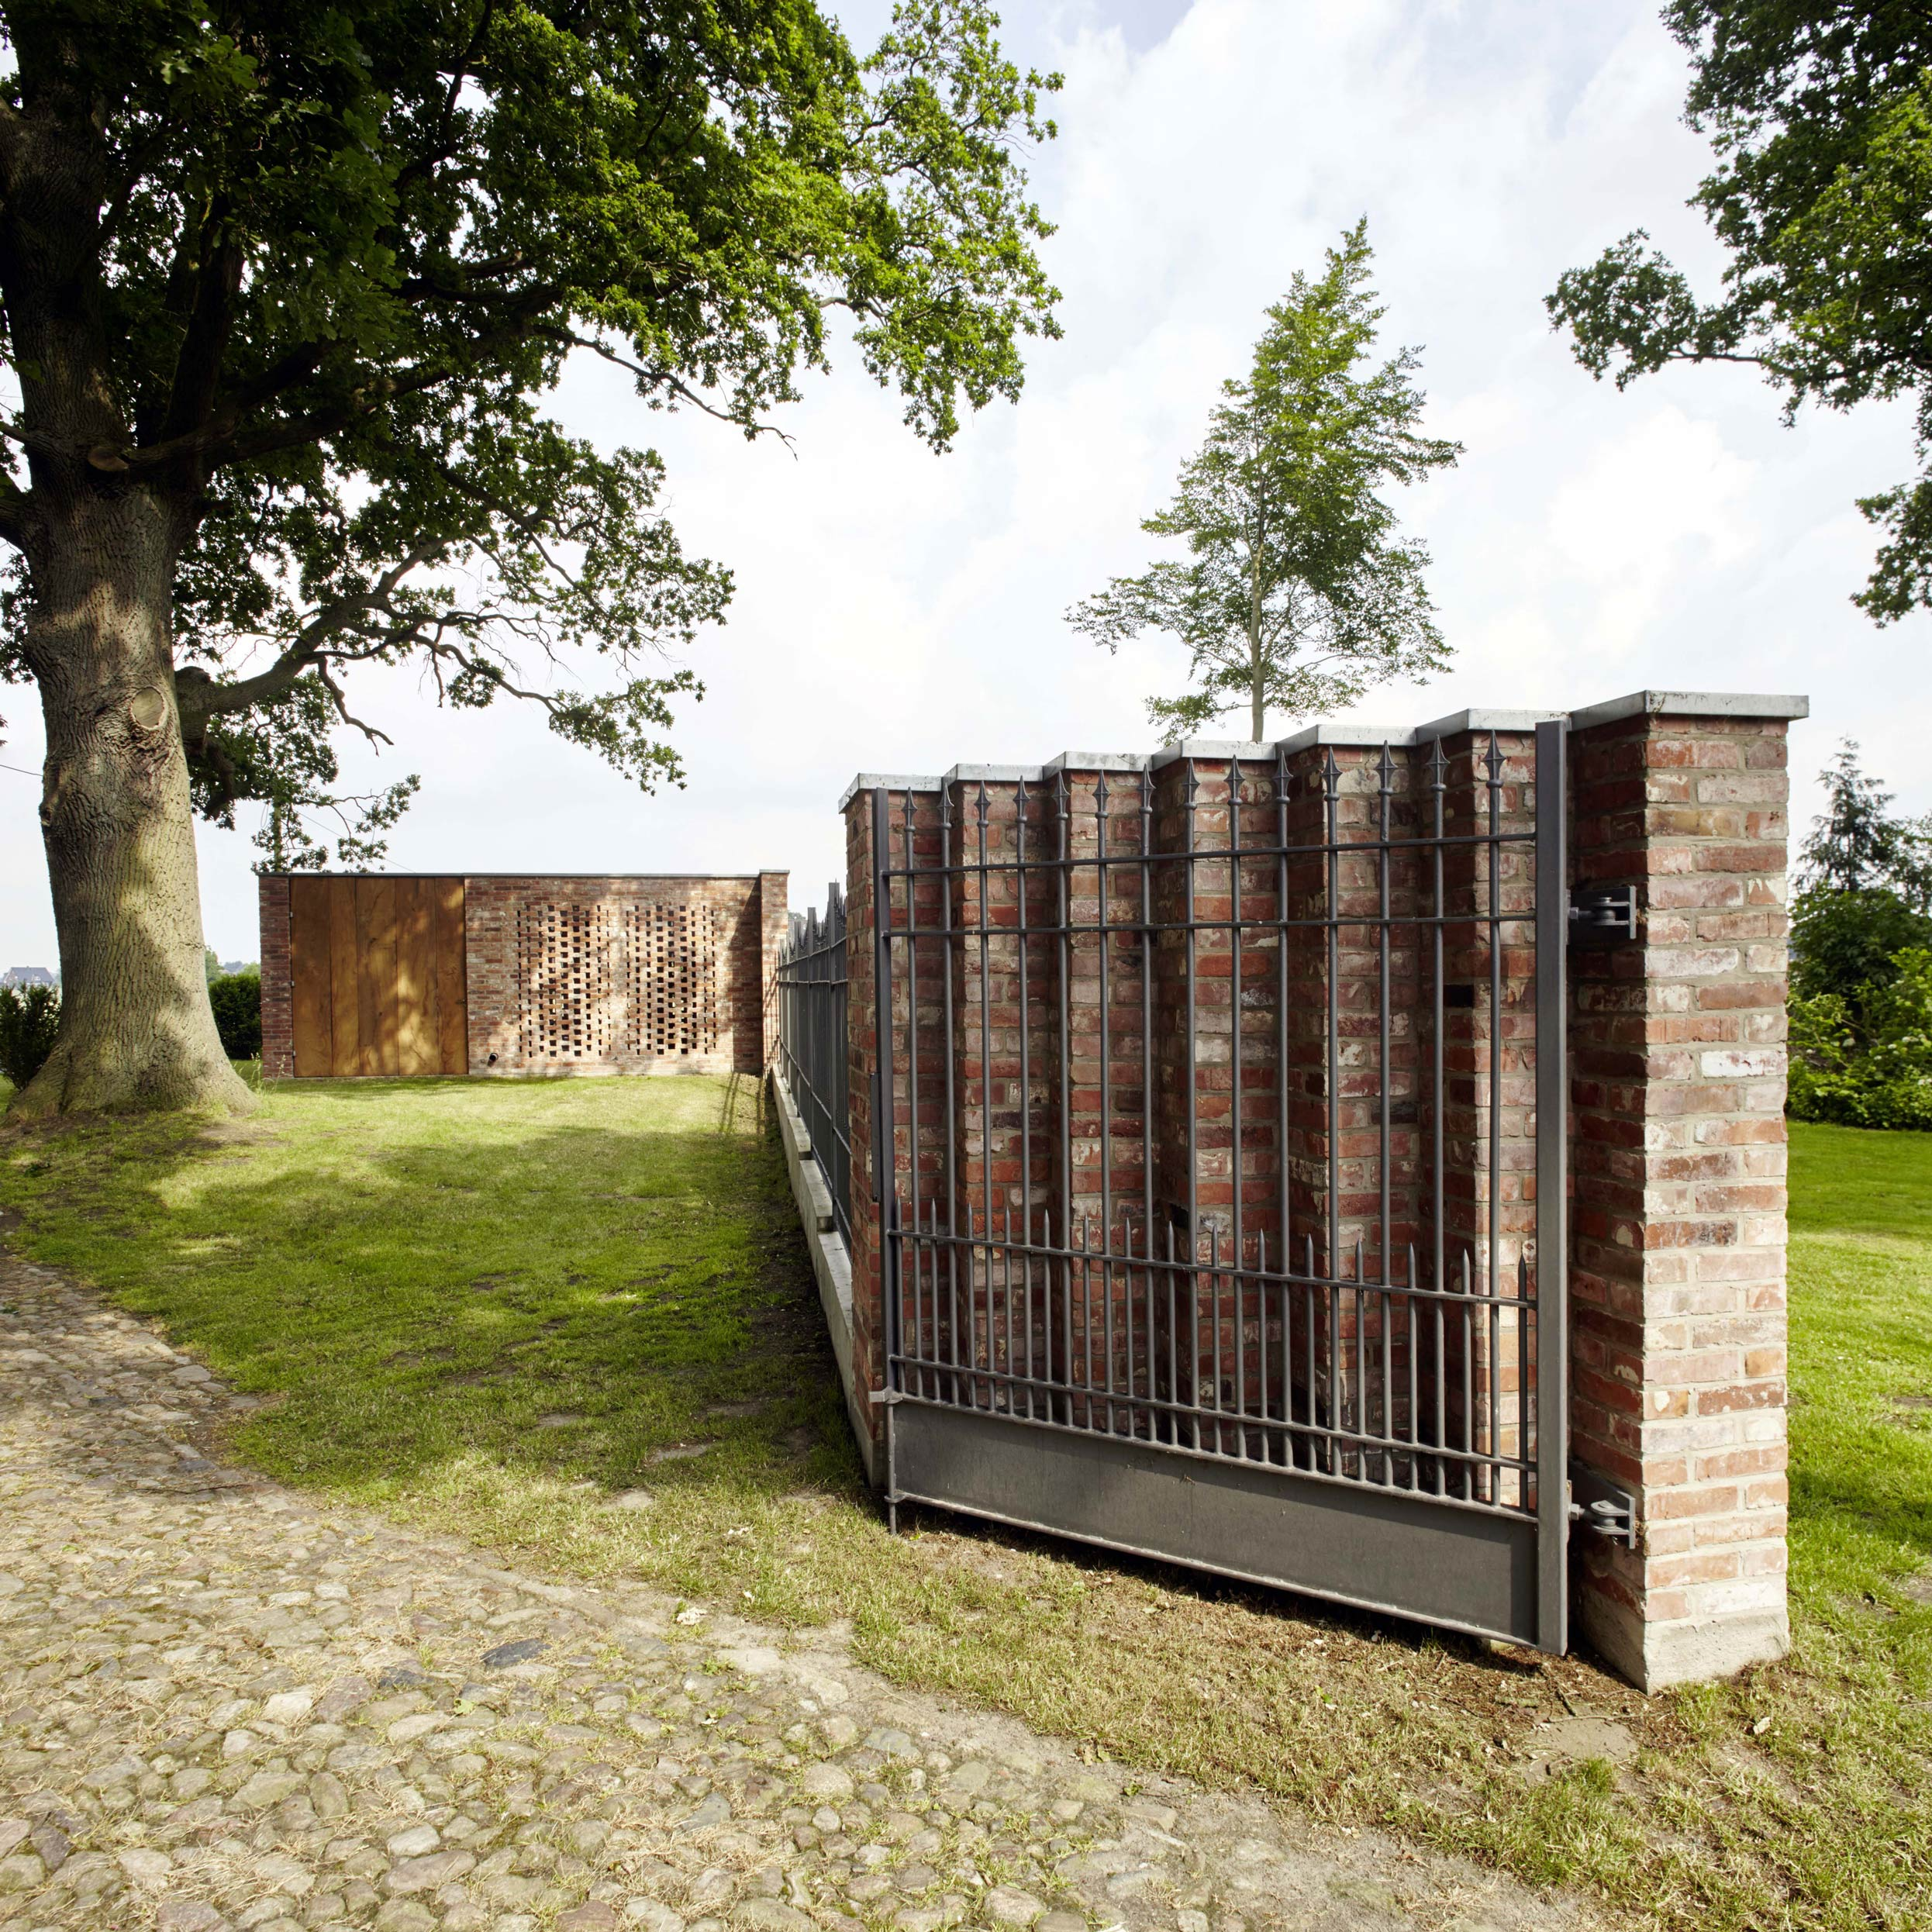 christian_burmester_architecture_wirth_remisenpavillon_02